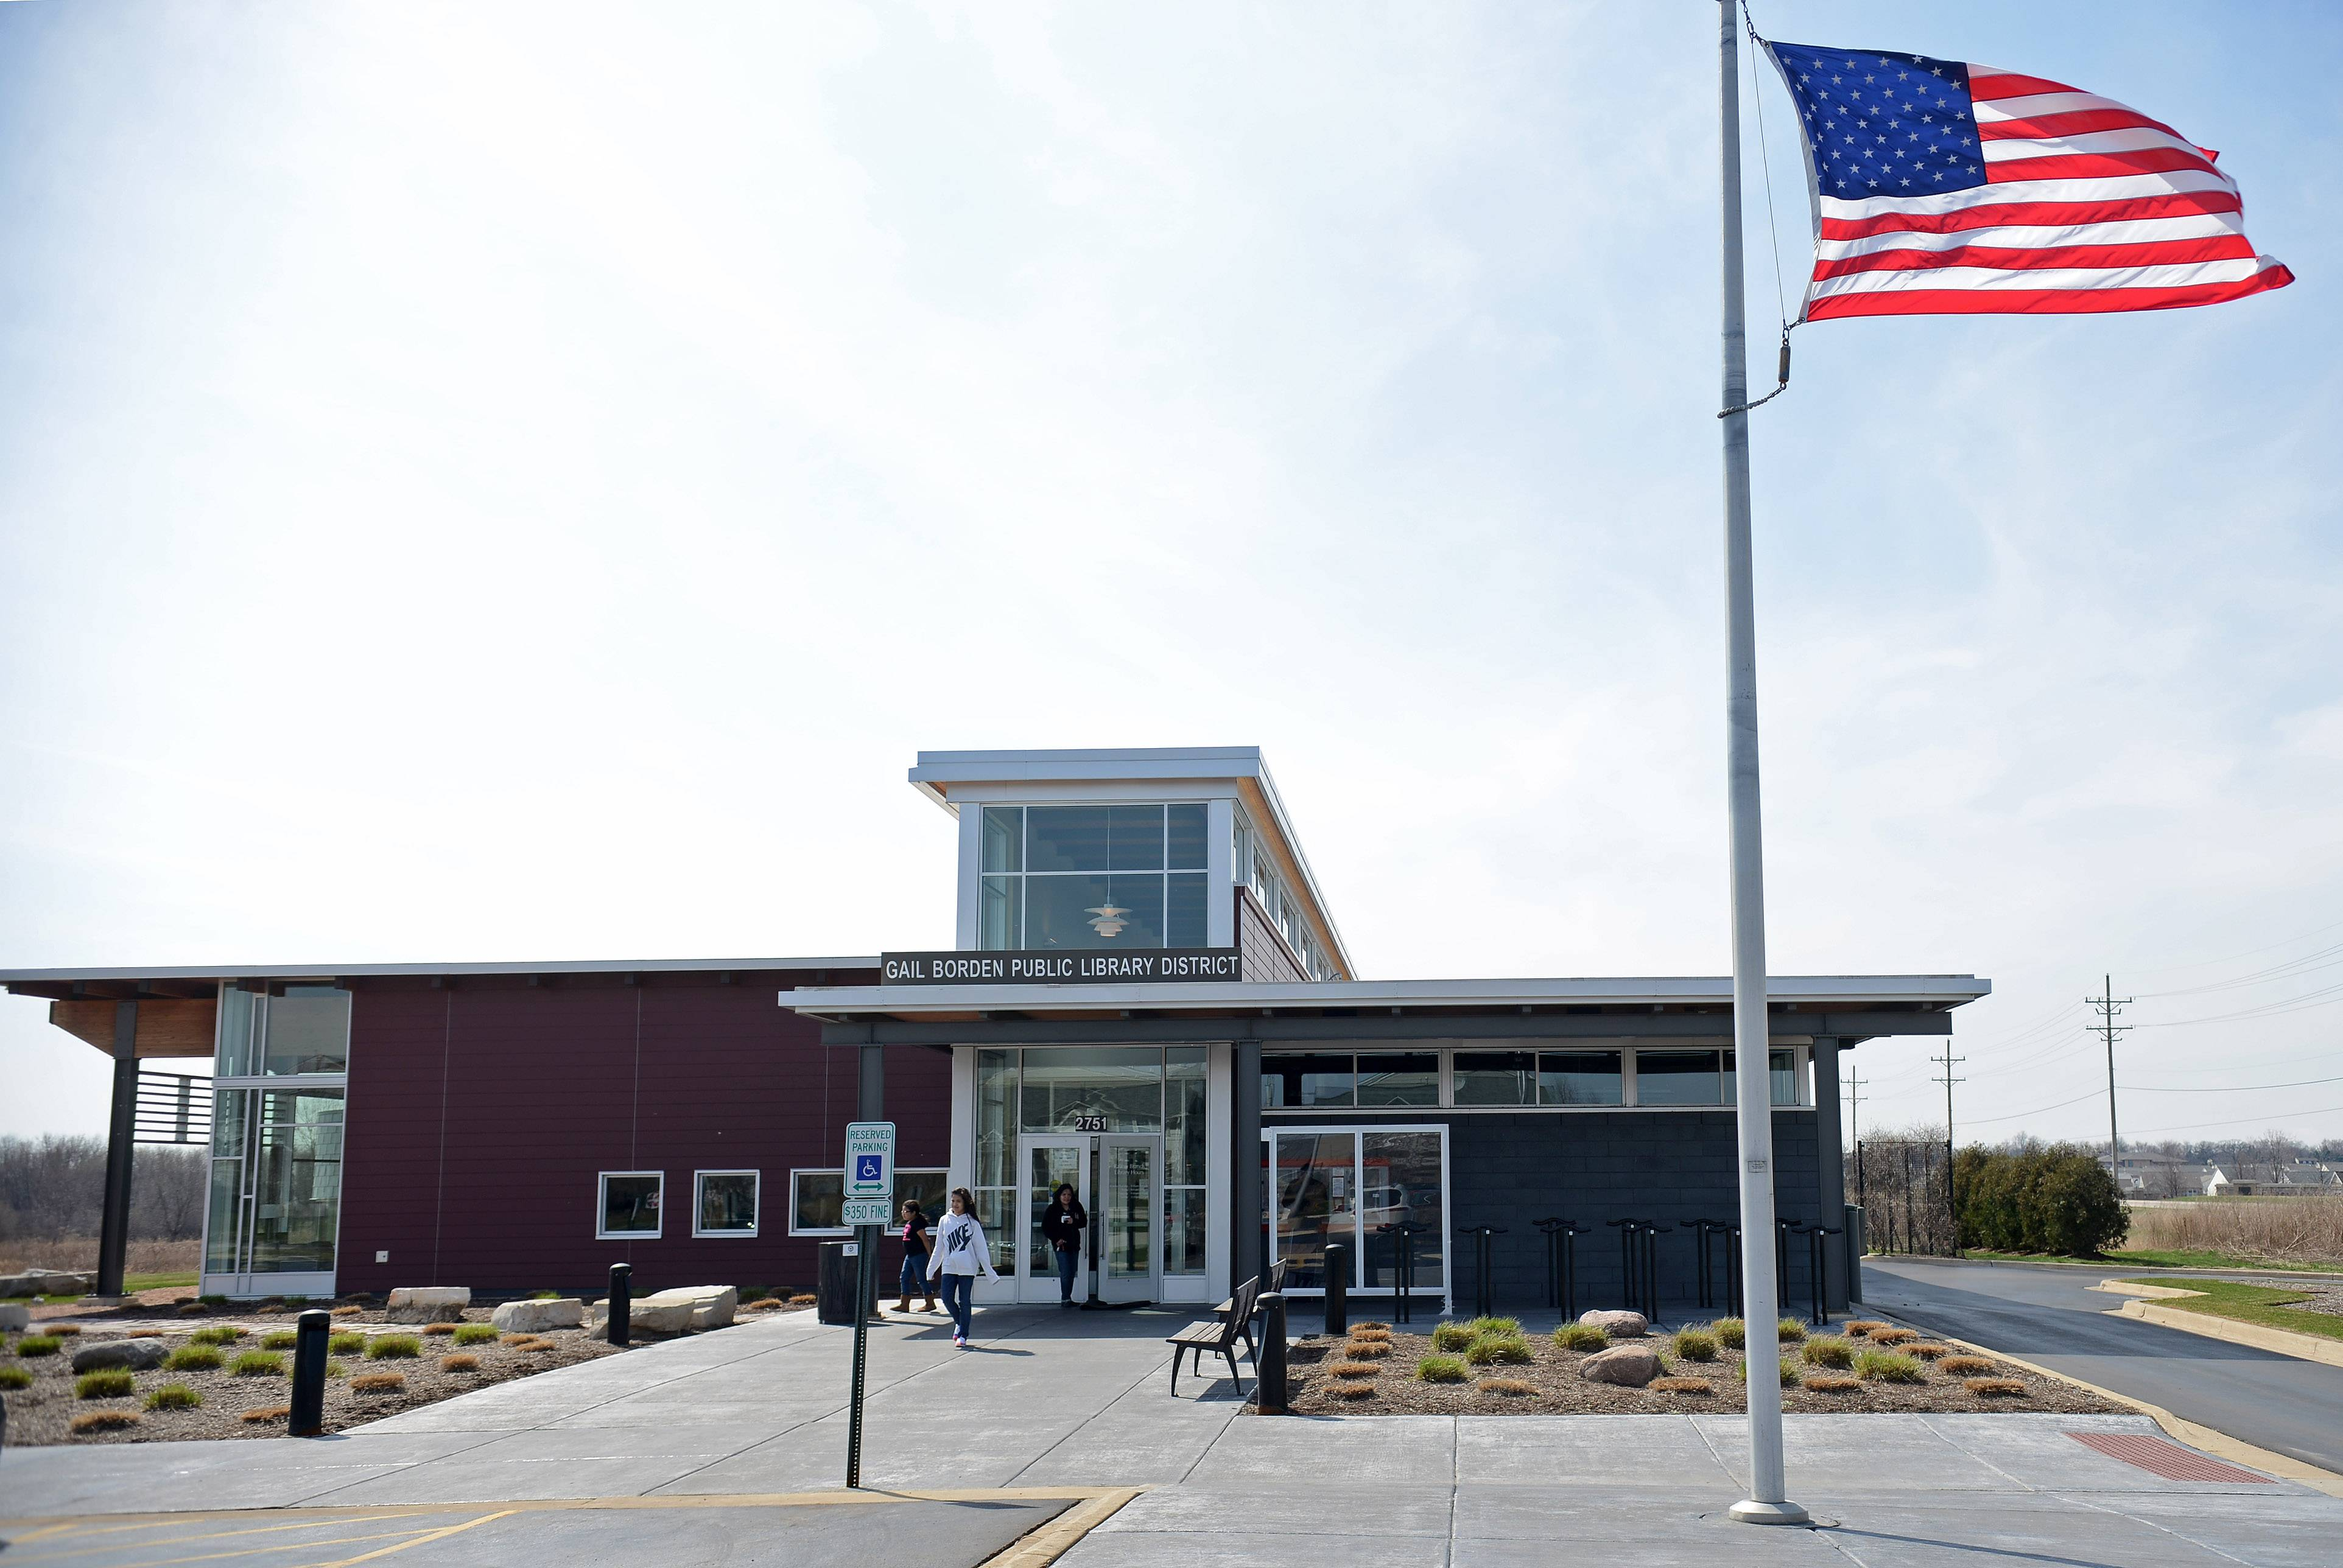 The Gail Borden Public Library board will place a referendum question on the November ballot asking district residents and unserved people near the western boundary if they want to become members of the library district so they can actually use the library, such as the Rakow branch on Bowes Road.